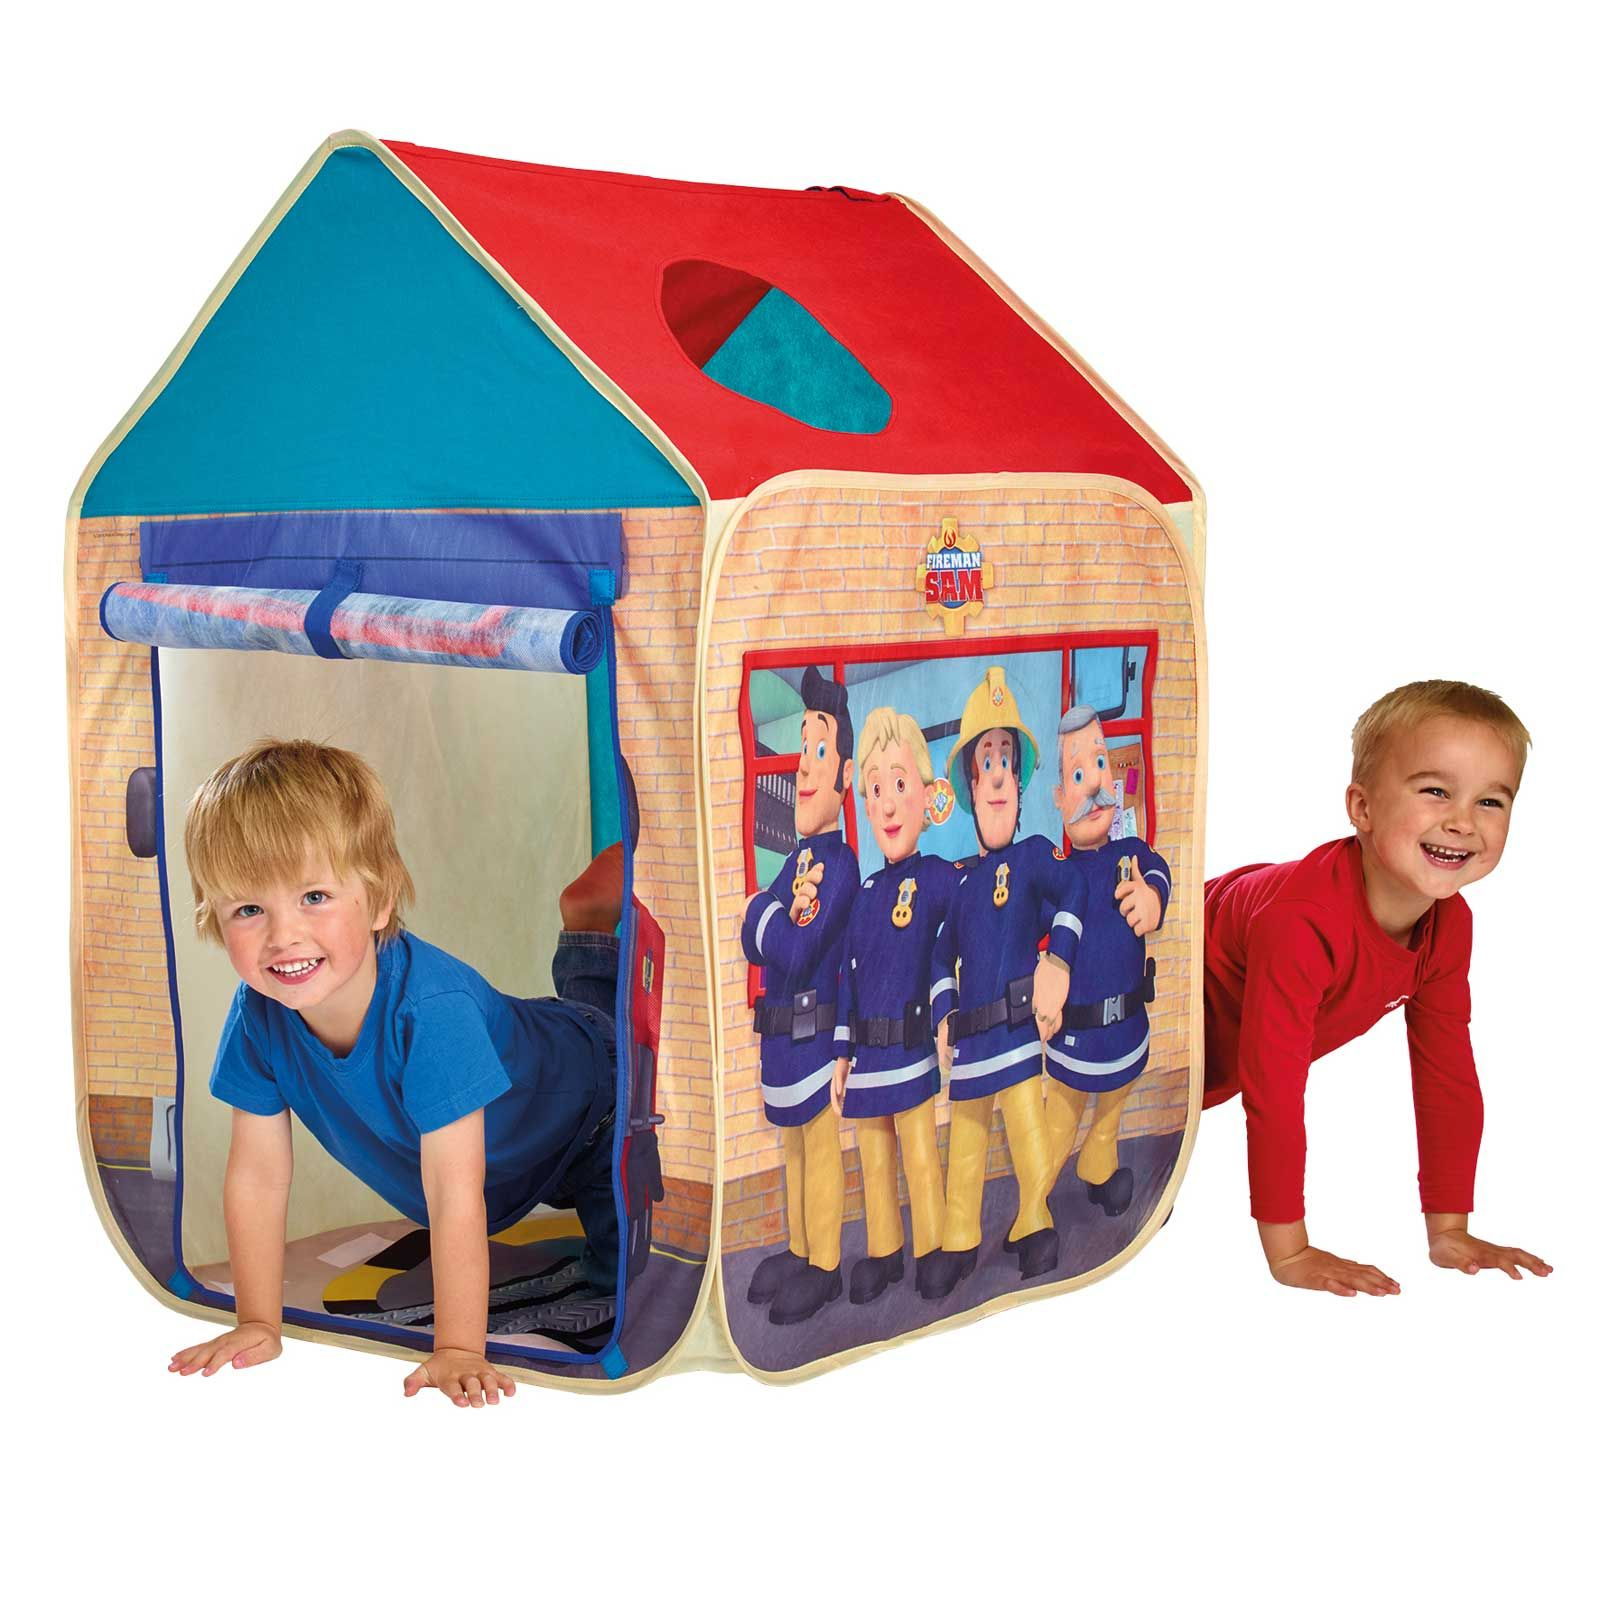 CHARACTER-KIDS-WENDY-HOUSE-PLAY-TENTS-PEPPA-PAW-  sc 1 st  eBay & CHARACTER KIDS WENDY HOUSE PLAY TENTS - PEPPA PAW PATROL THOMAS ...